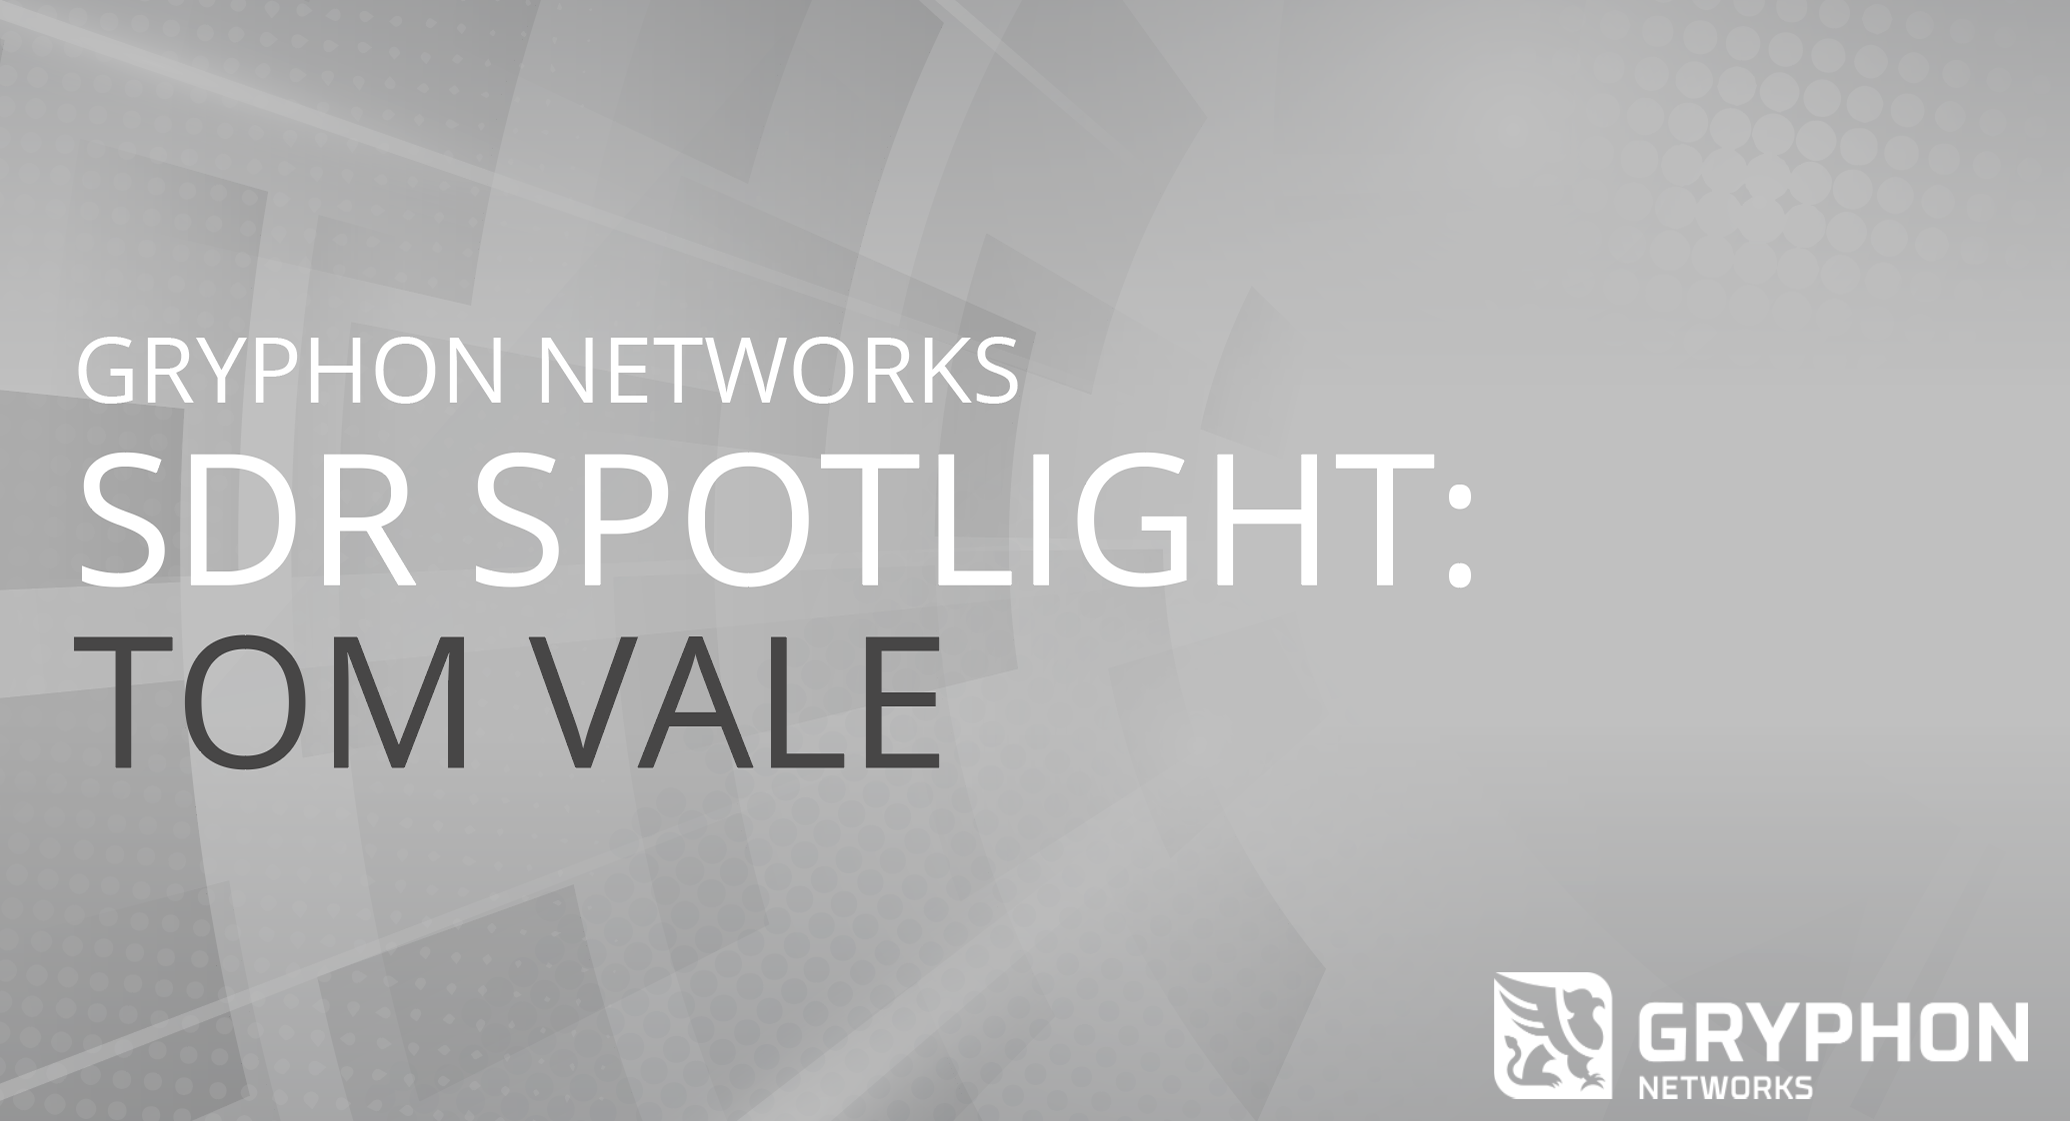 SDR SPOTLIGHT: INTERVIEW WITH TOM VALE